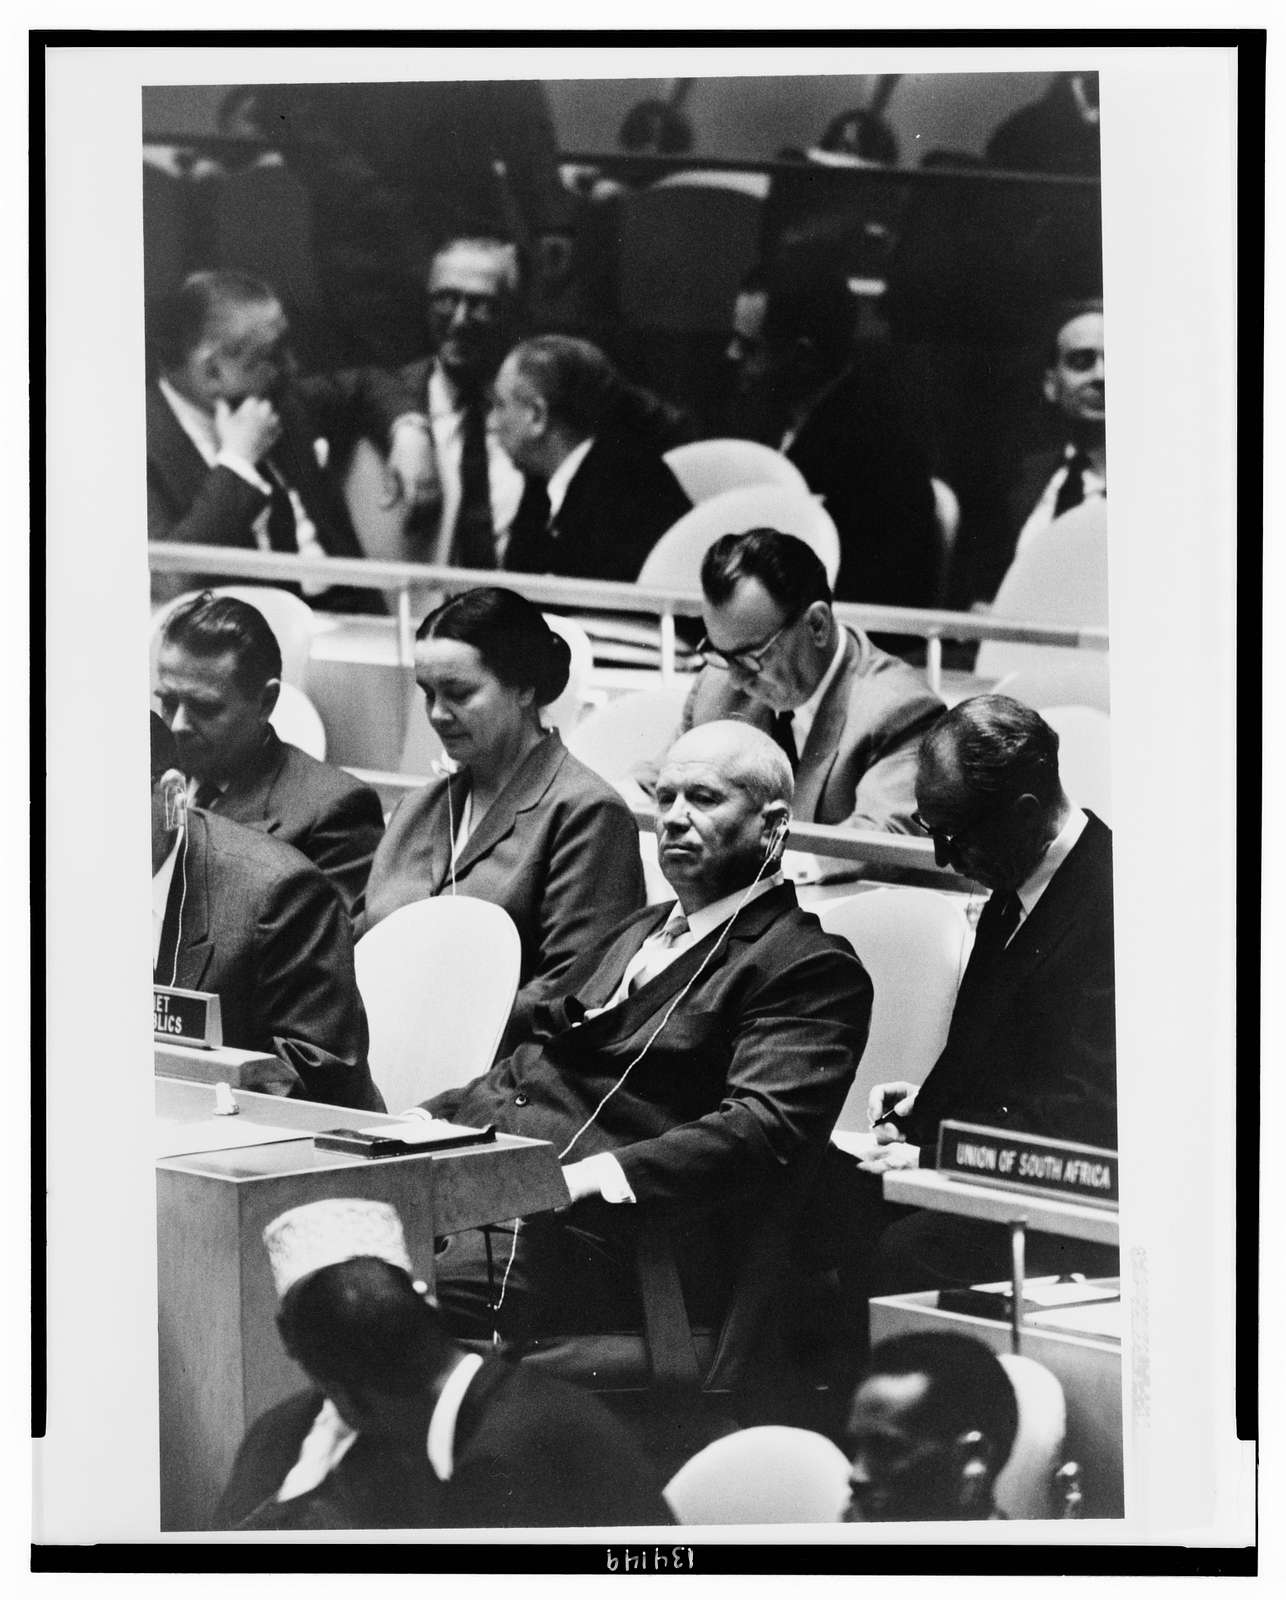 [Nikita Khrushchev, leader of the Union of Soviet Socialist Republics, at a meeting of the United Nations General Assembly, New York, New York] / [WKL].